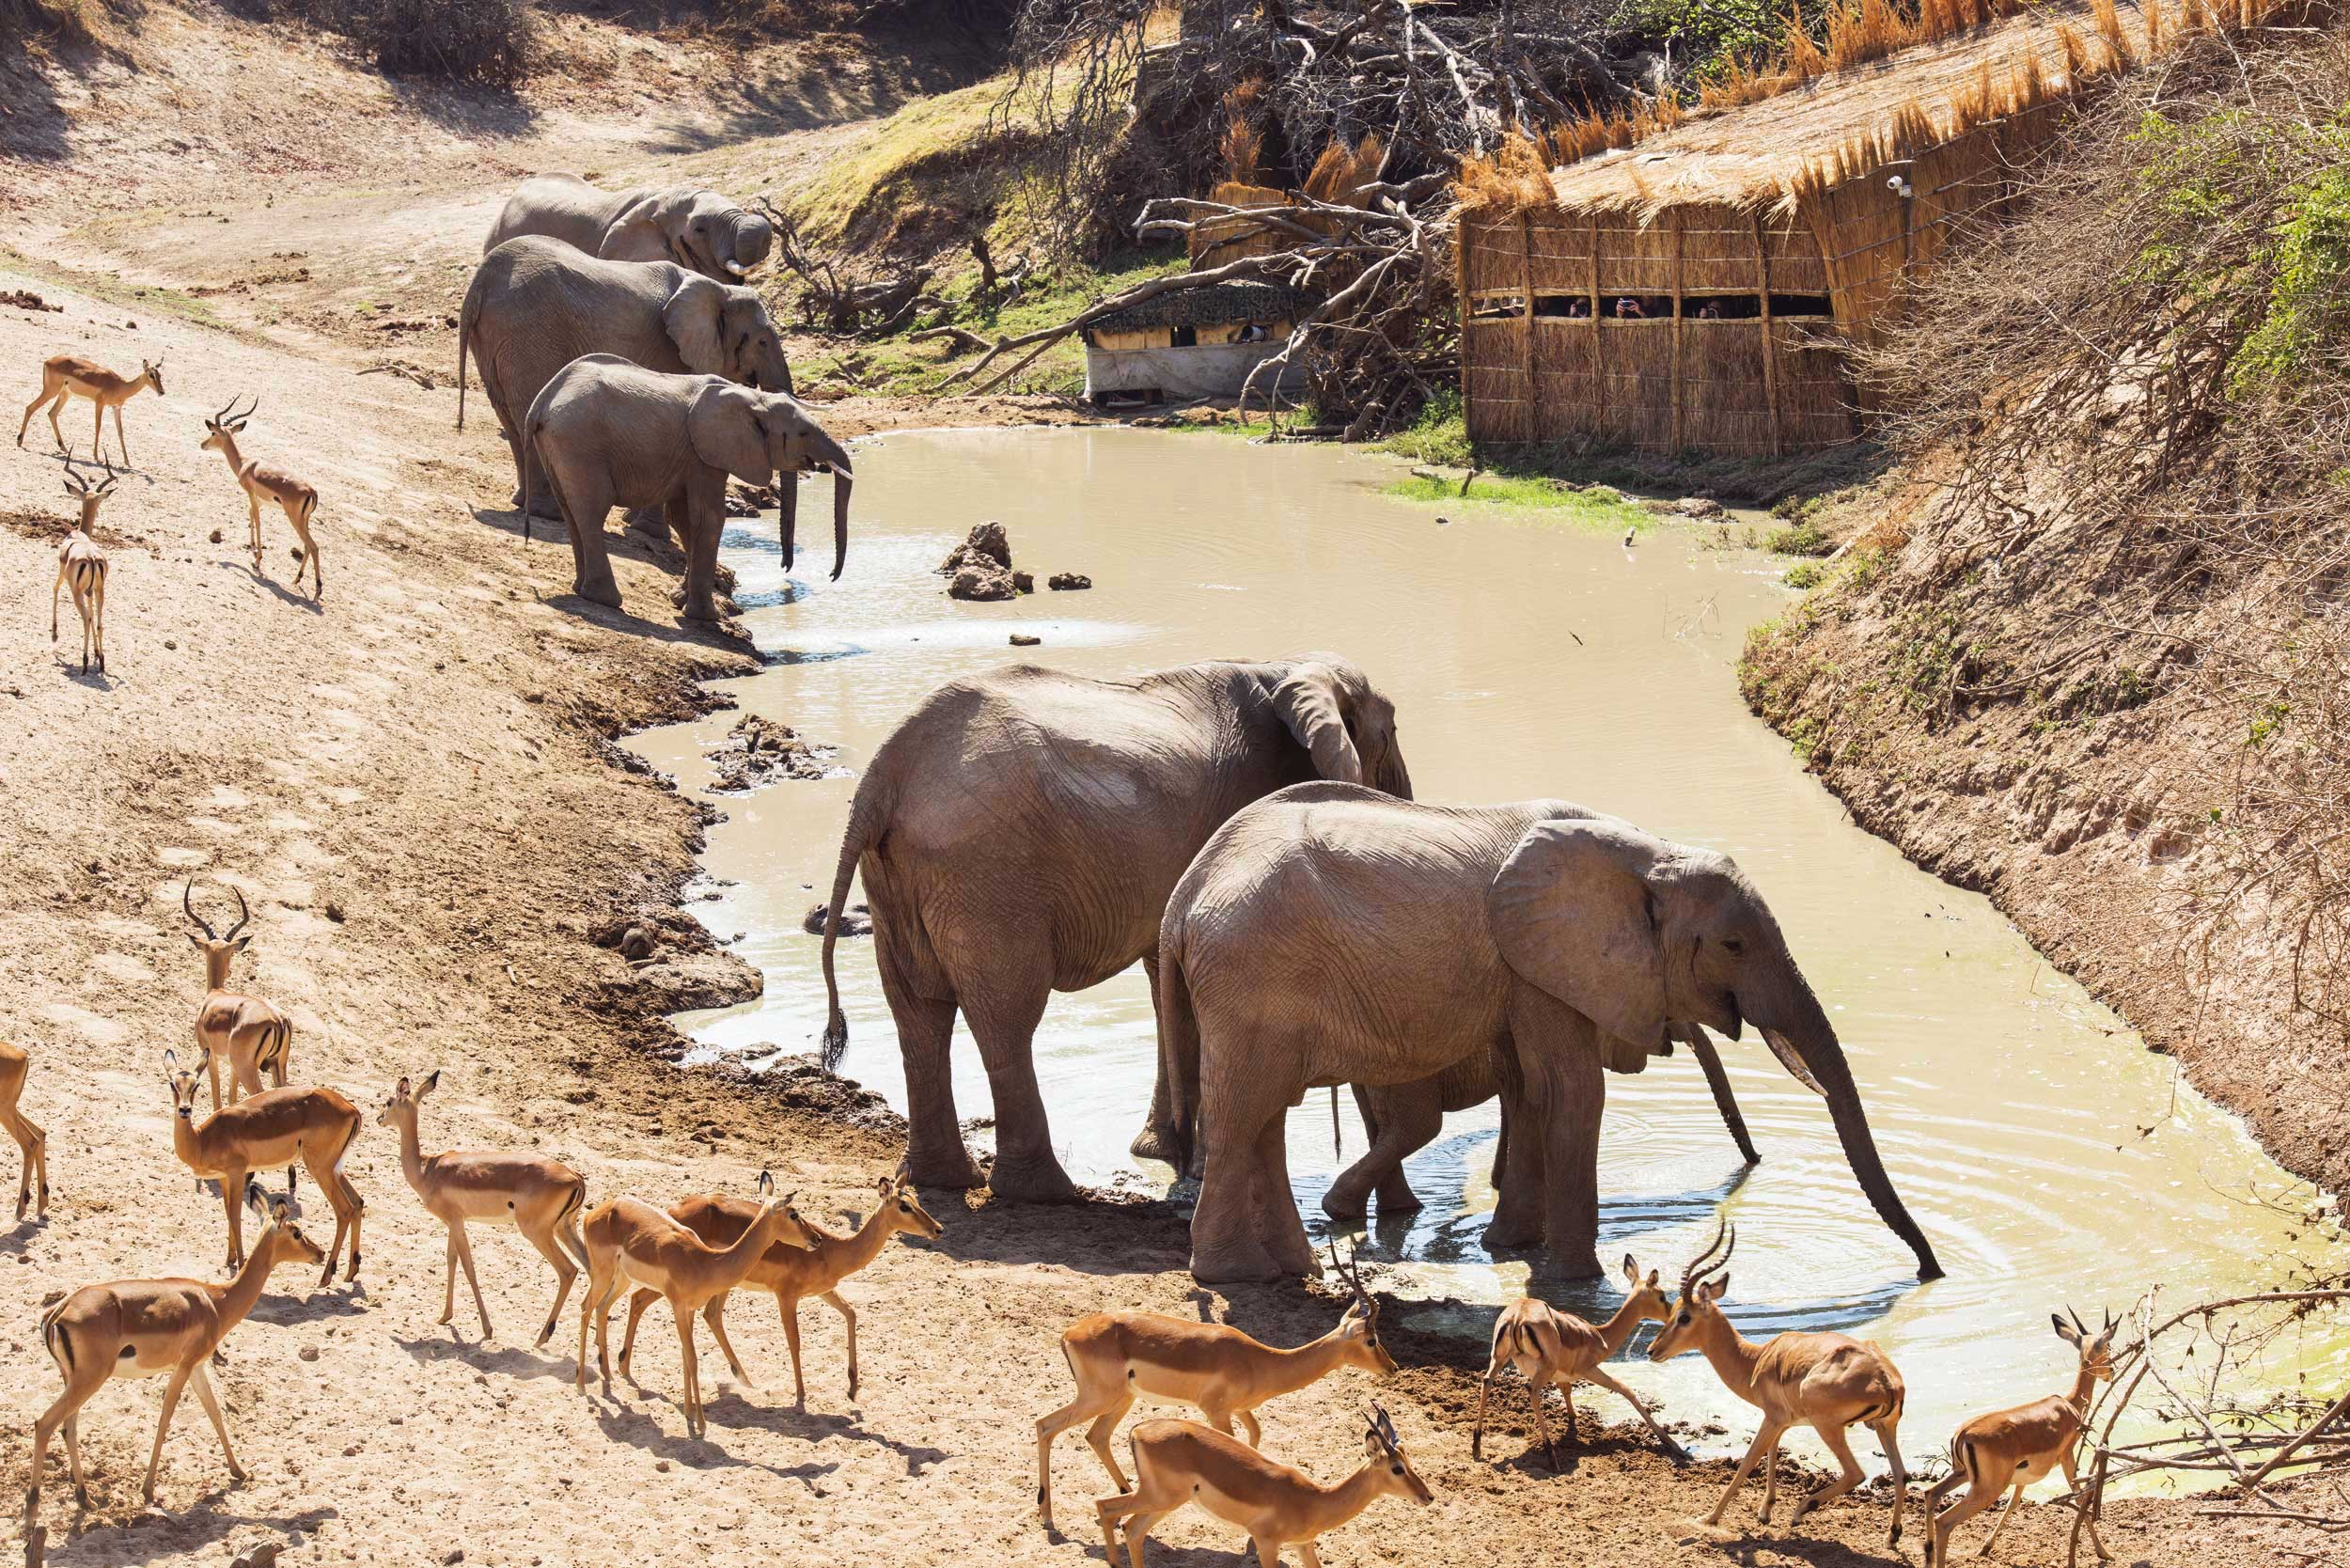 Elephants and impalas on the dusty banks of a waterhole with a hide on the far side, Zambia